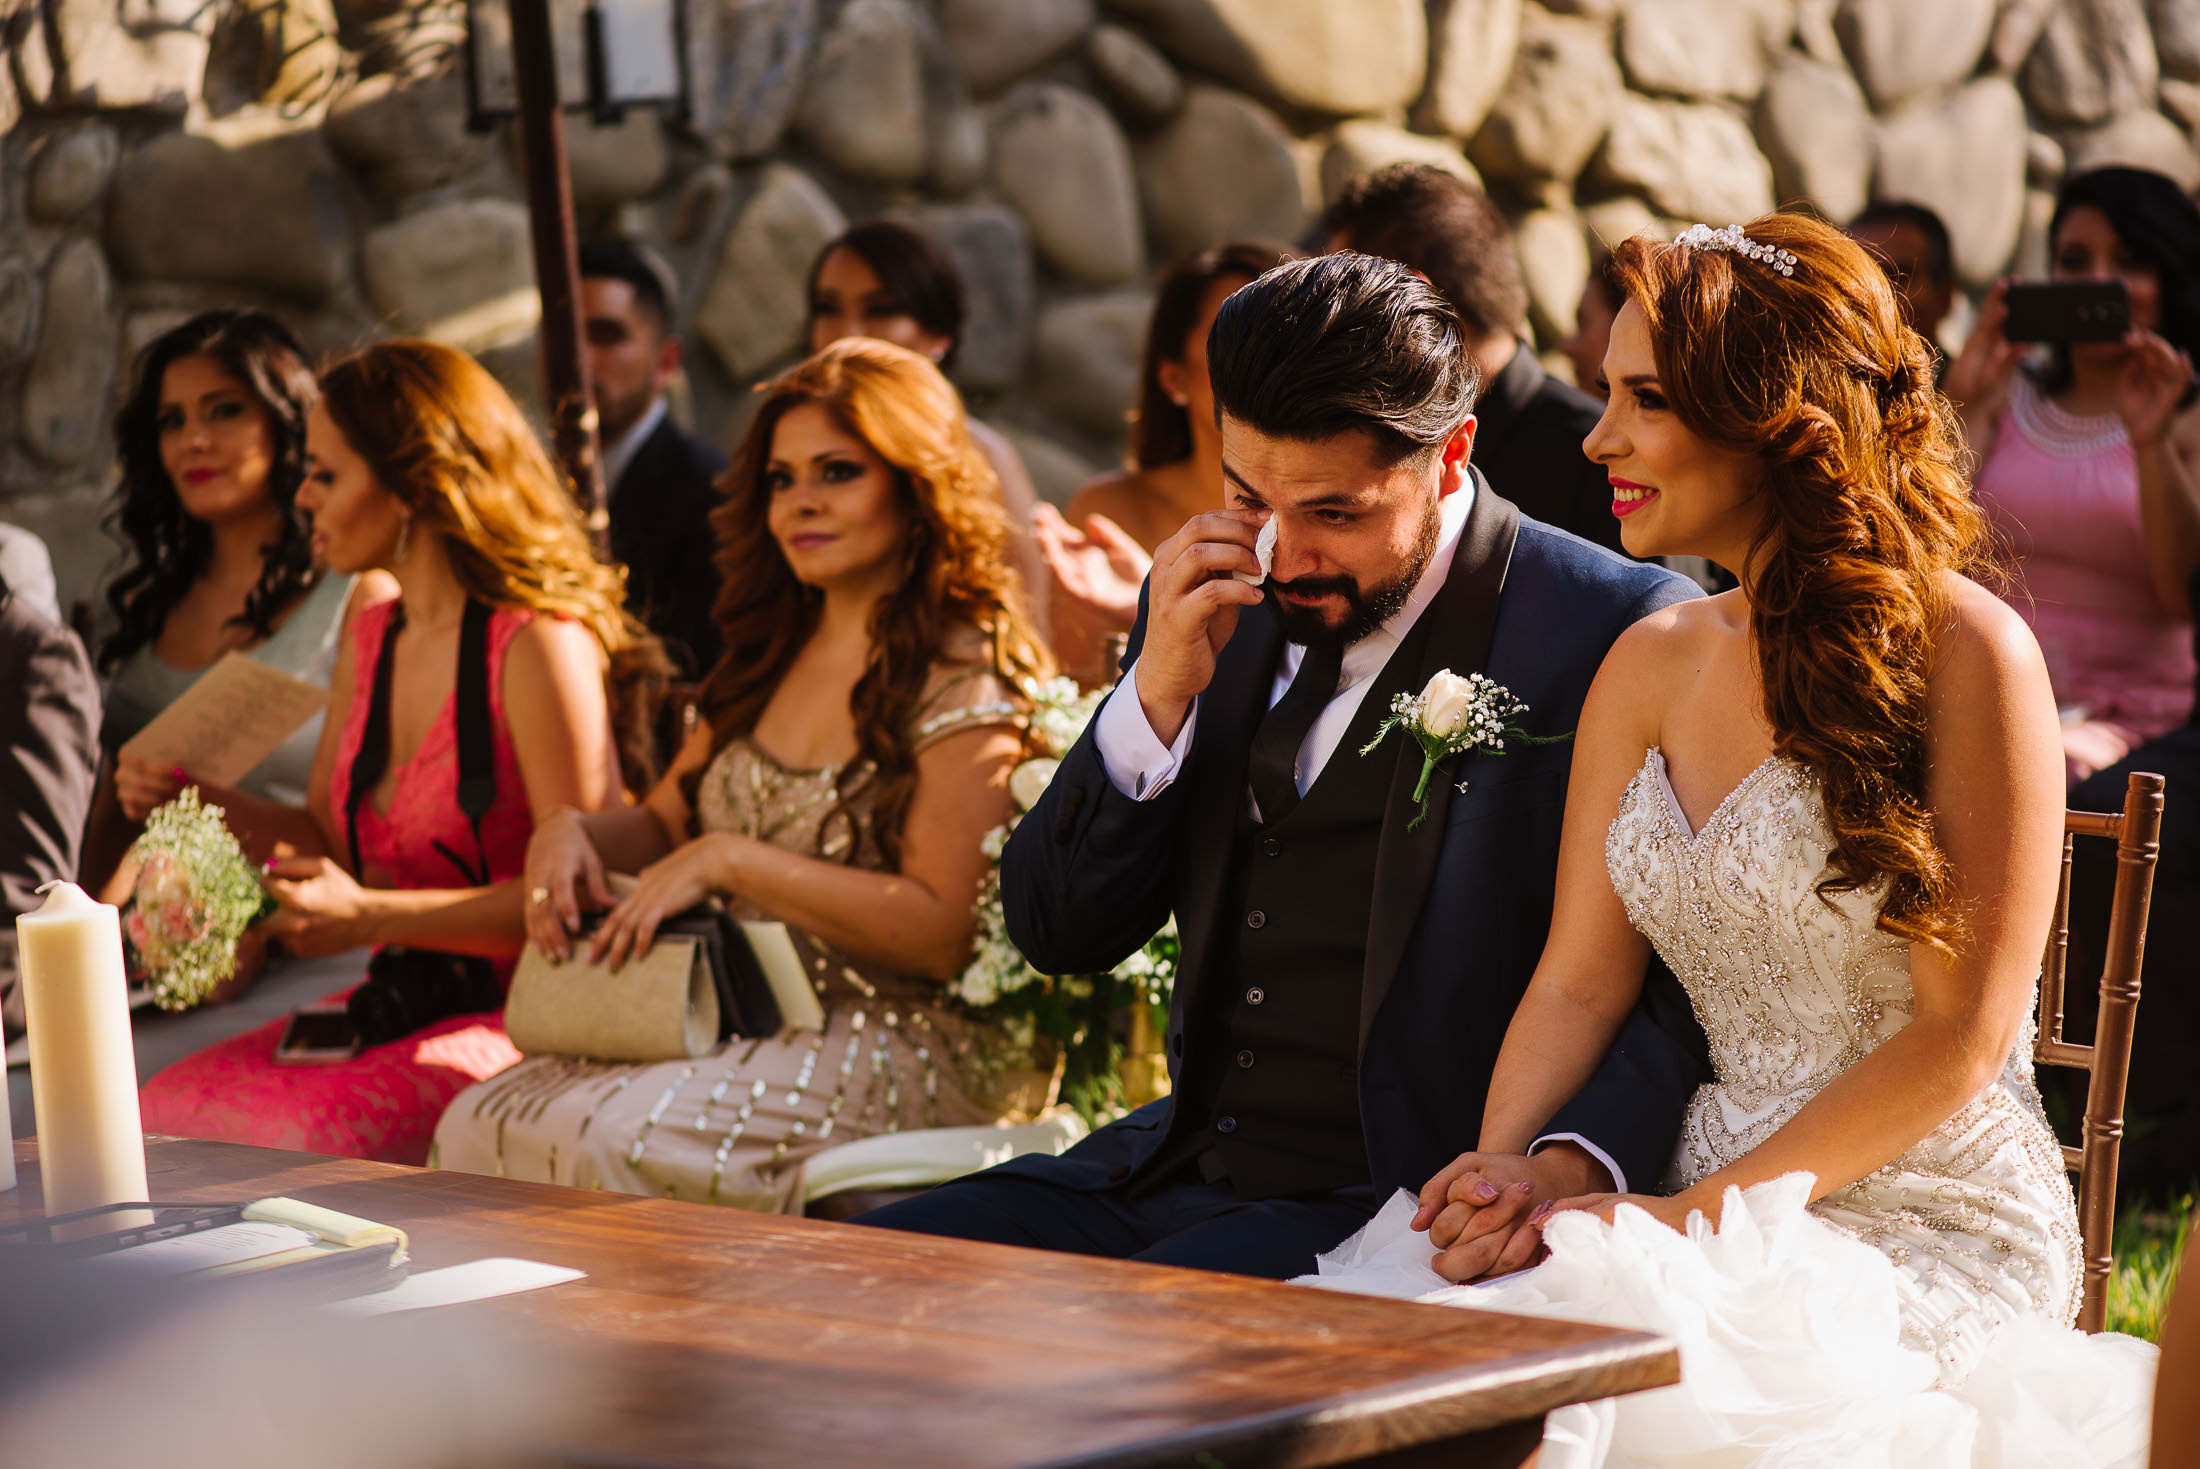 Teary groom at ceremony emotional moment